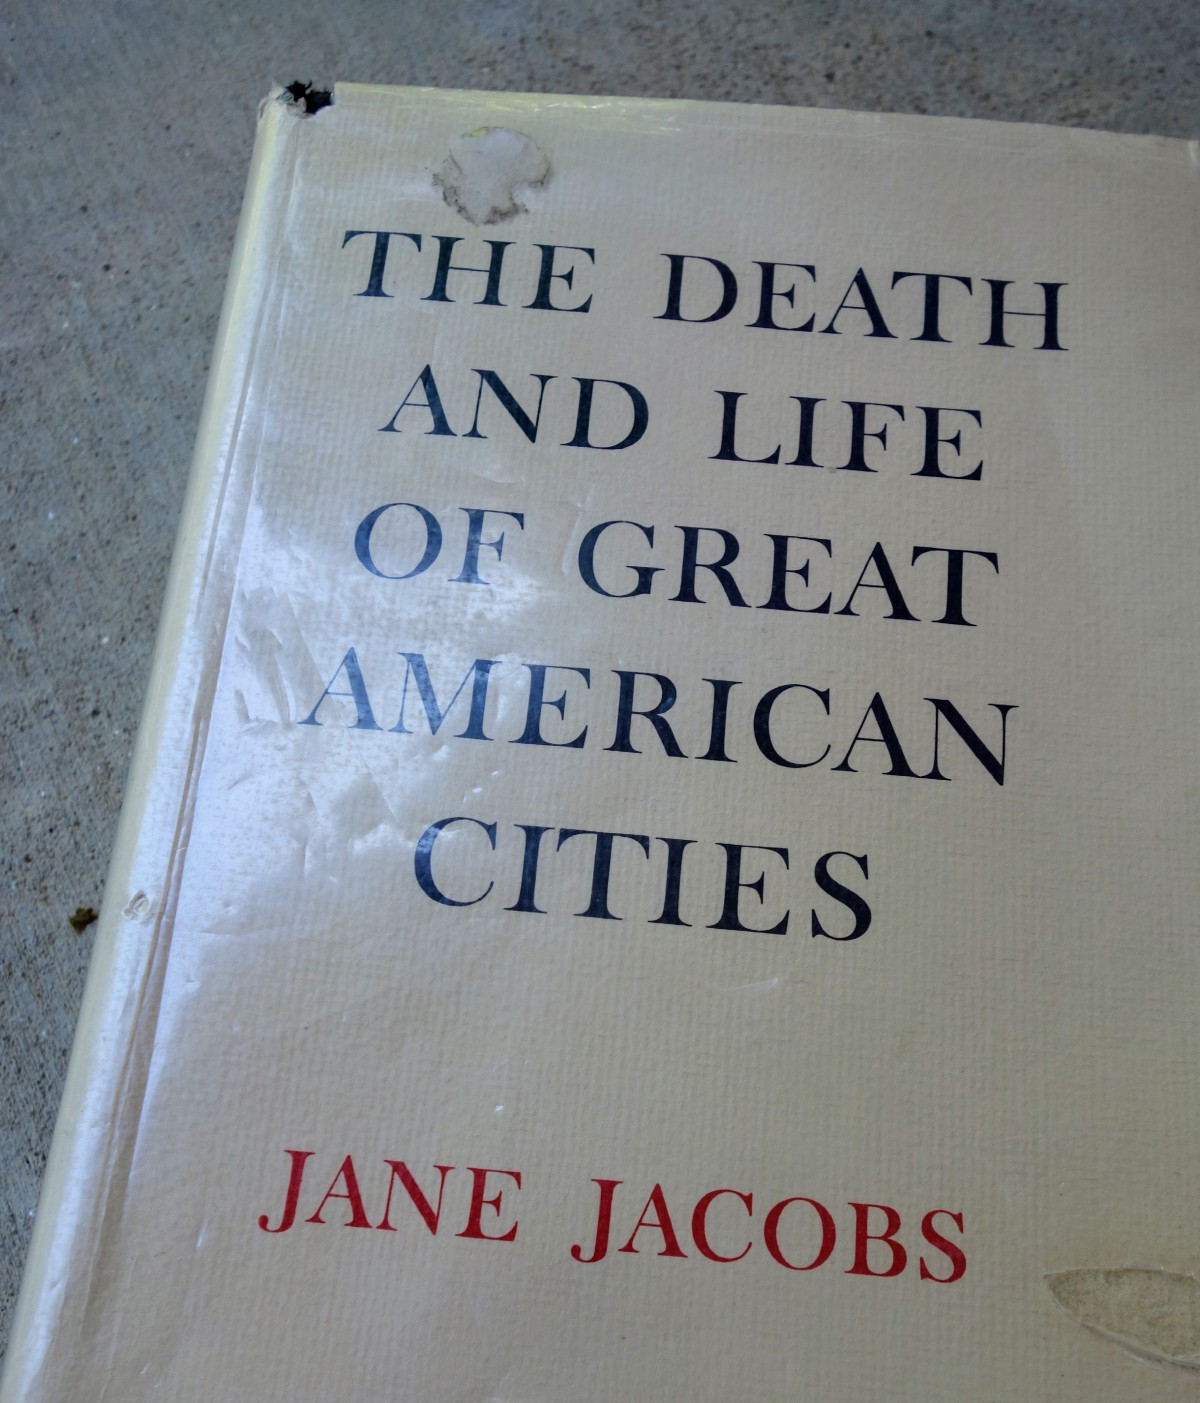 the death and life of great american cities essay The death and life of great american cities (1961) national review's list of the top 100 nonfiction books of the 20th century.